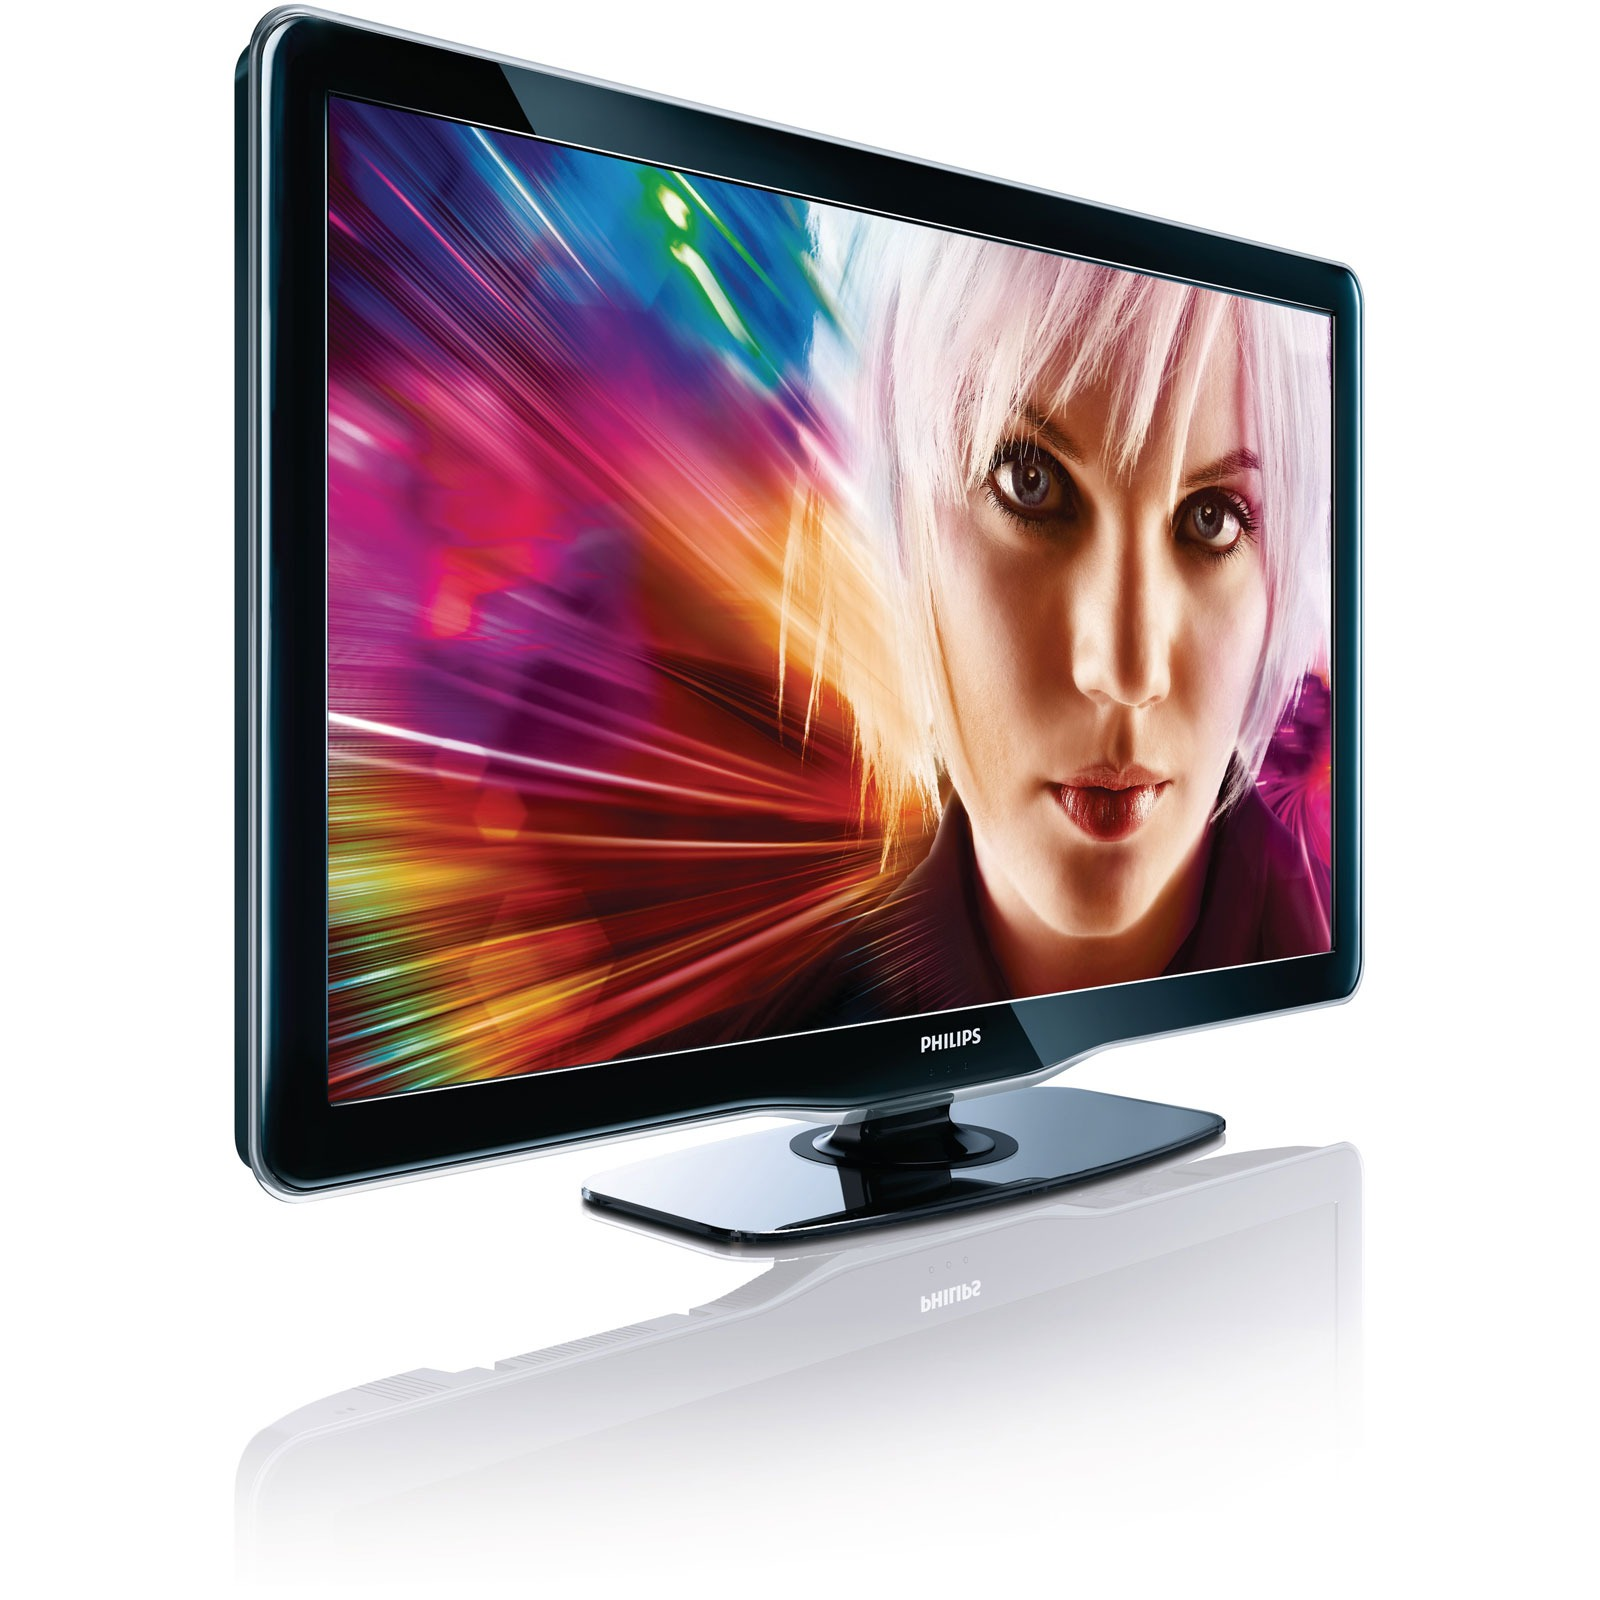 philips 40pfl5605h tv led full hd 40 tuner tnt hd. Black Bedroom Furniture Sets. Home Design Ideas